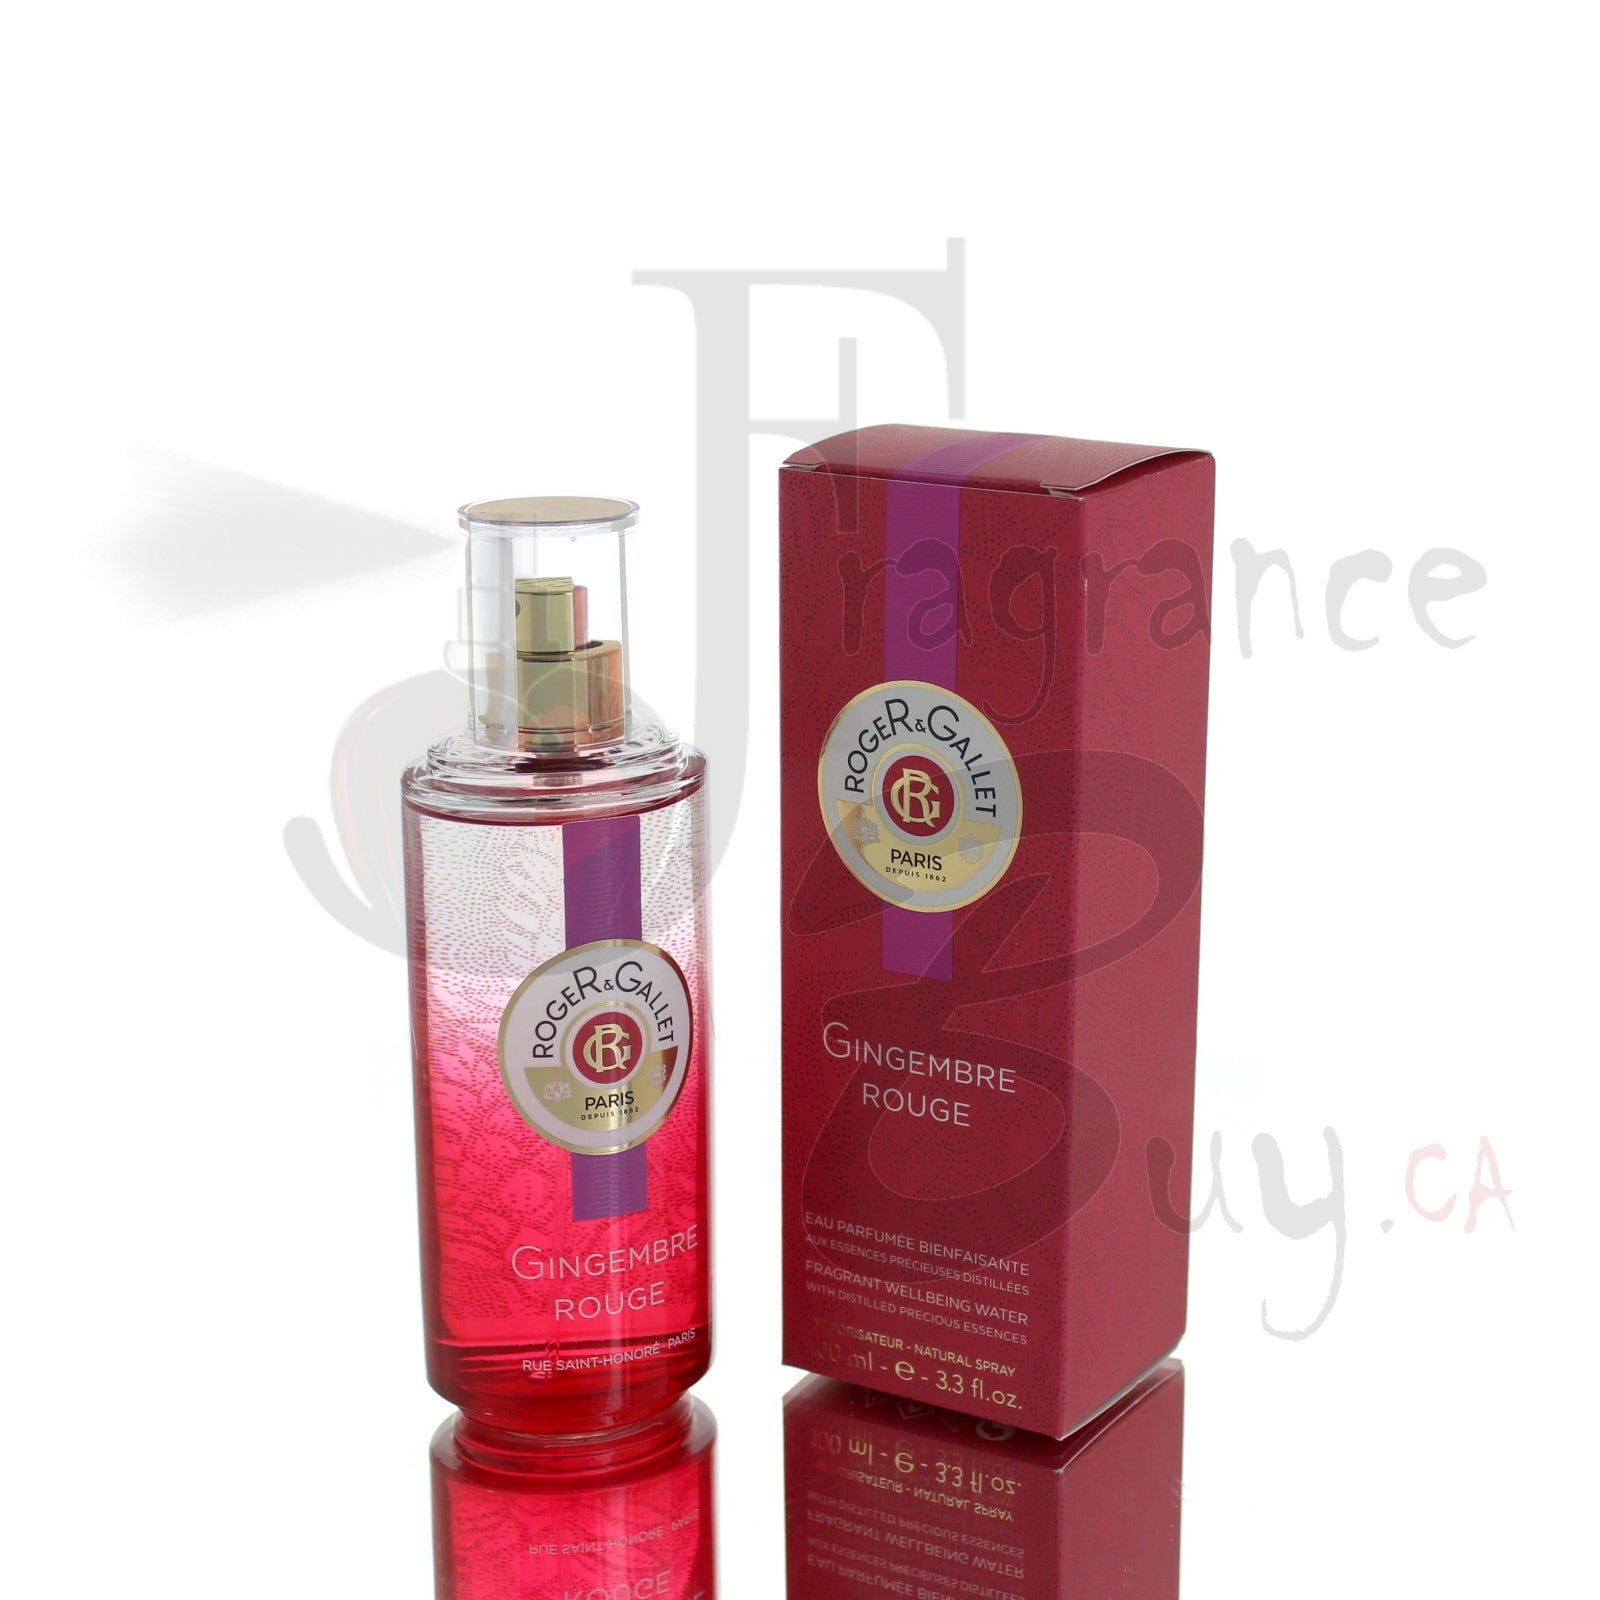 Roger & Gallet Gingembre Rouge For Woman